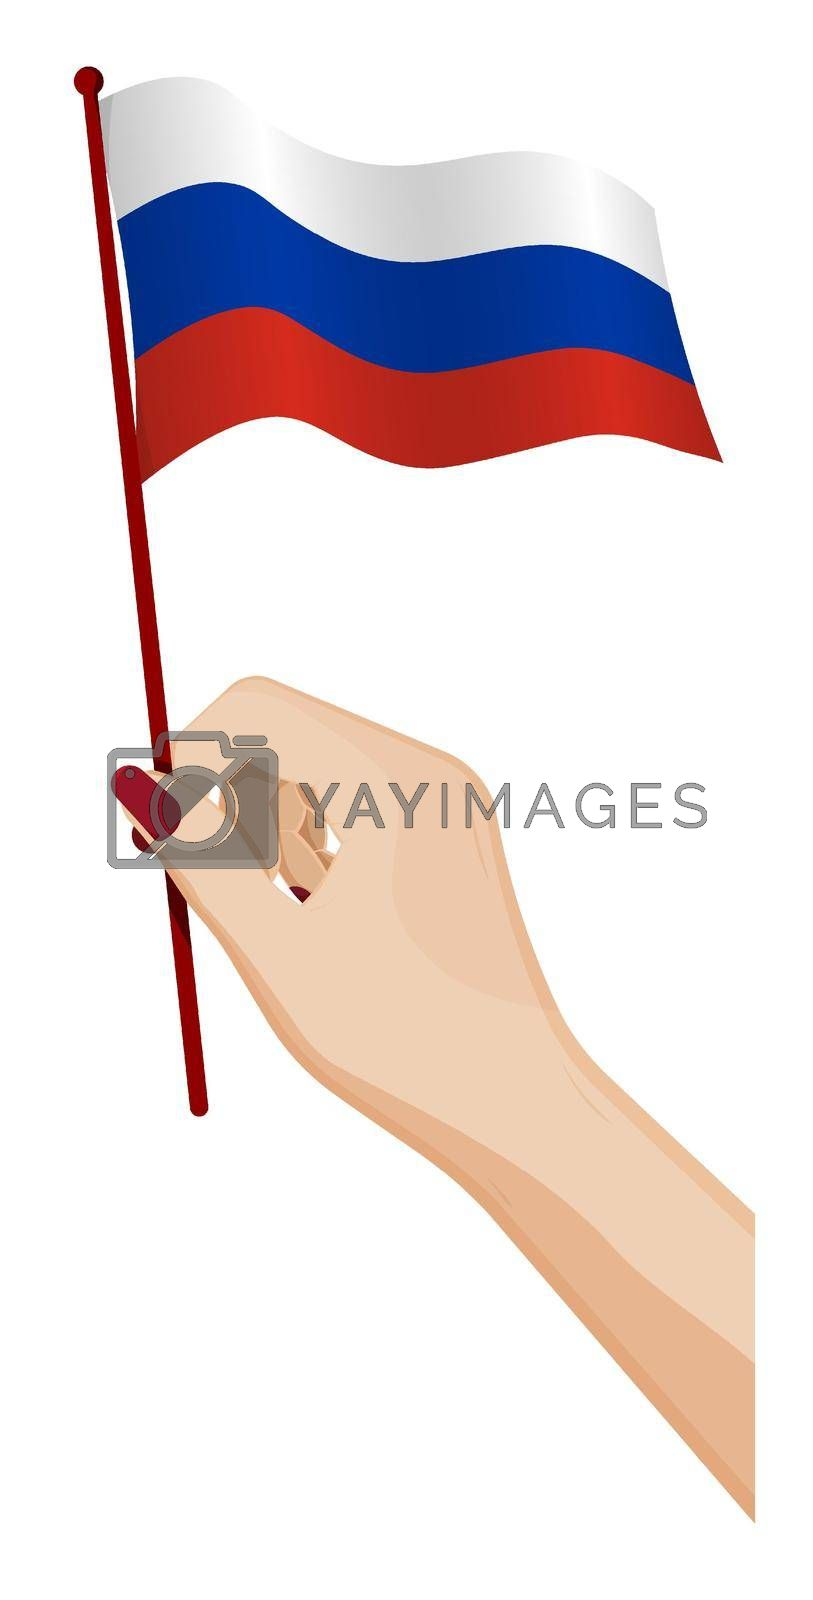 Female hand gently holds small flag of Russia, Russian Federation. Holiday design element. Cartoon vector on white background